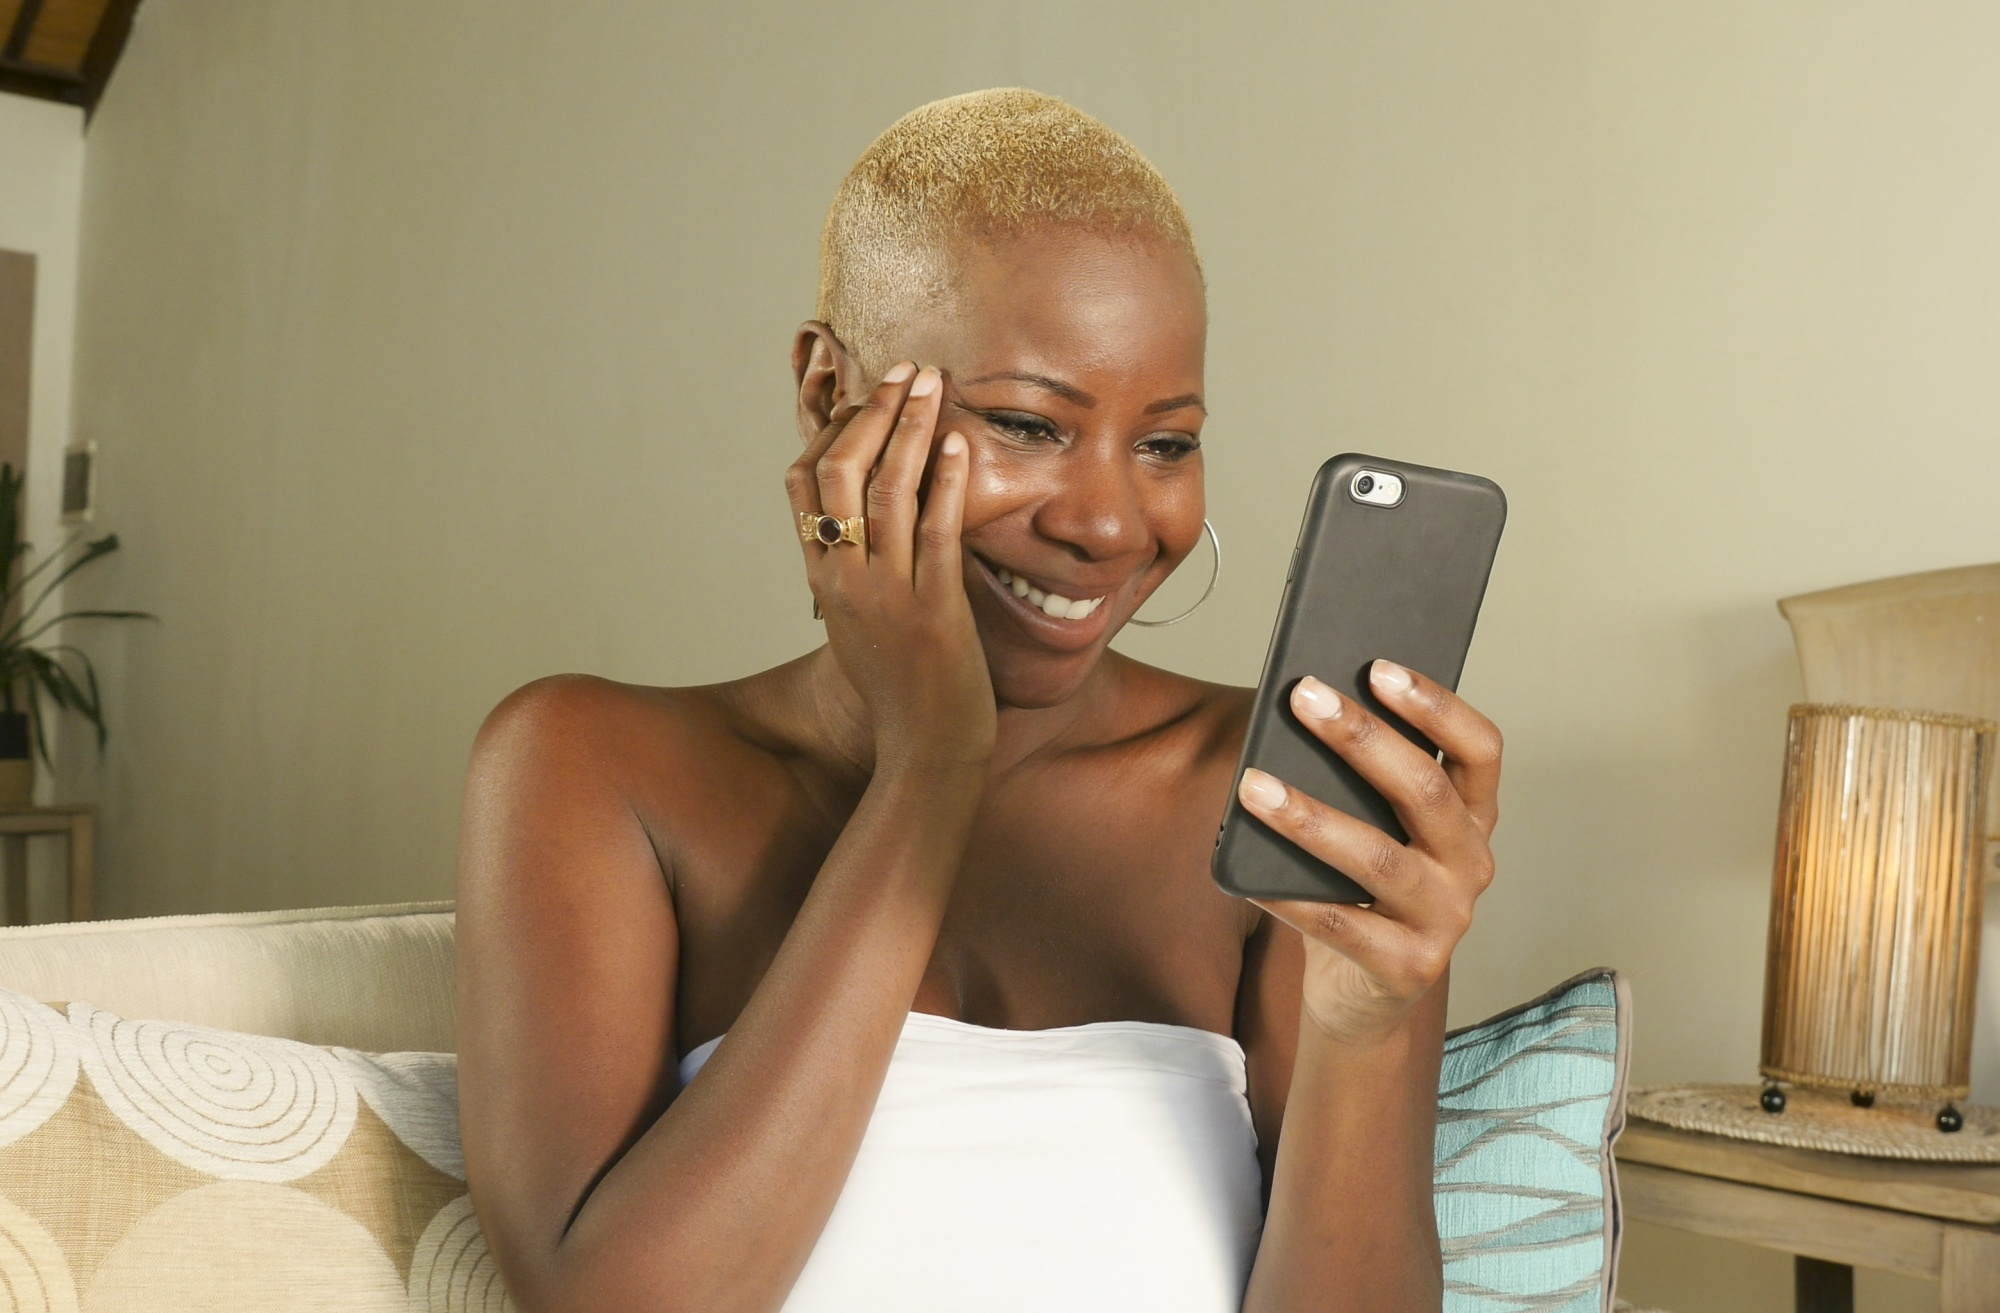 dating profile after 40, African American woman in living room smiling looking at cell phone